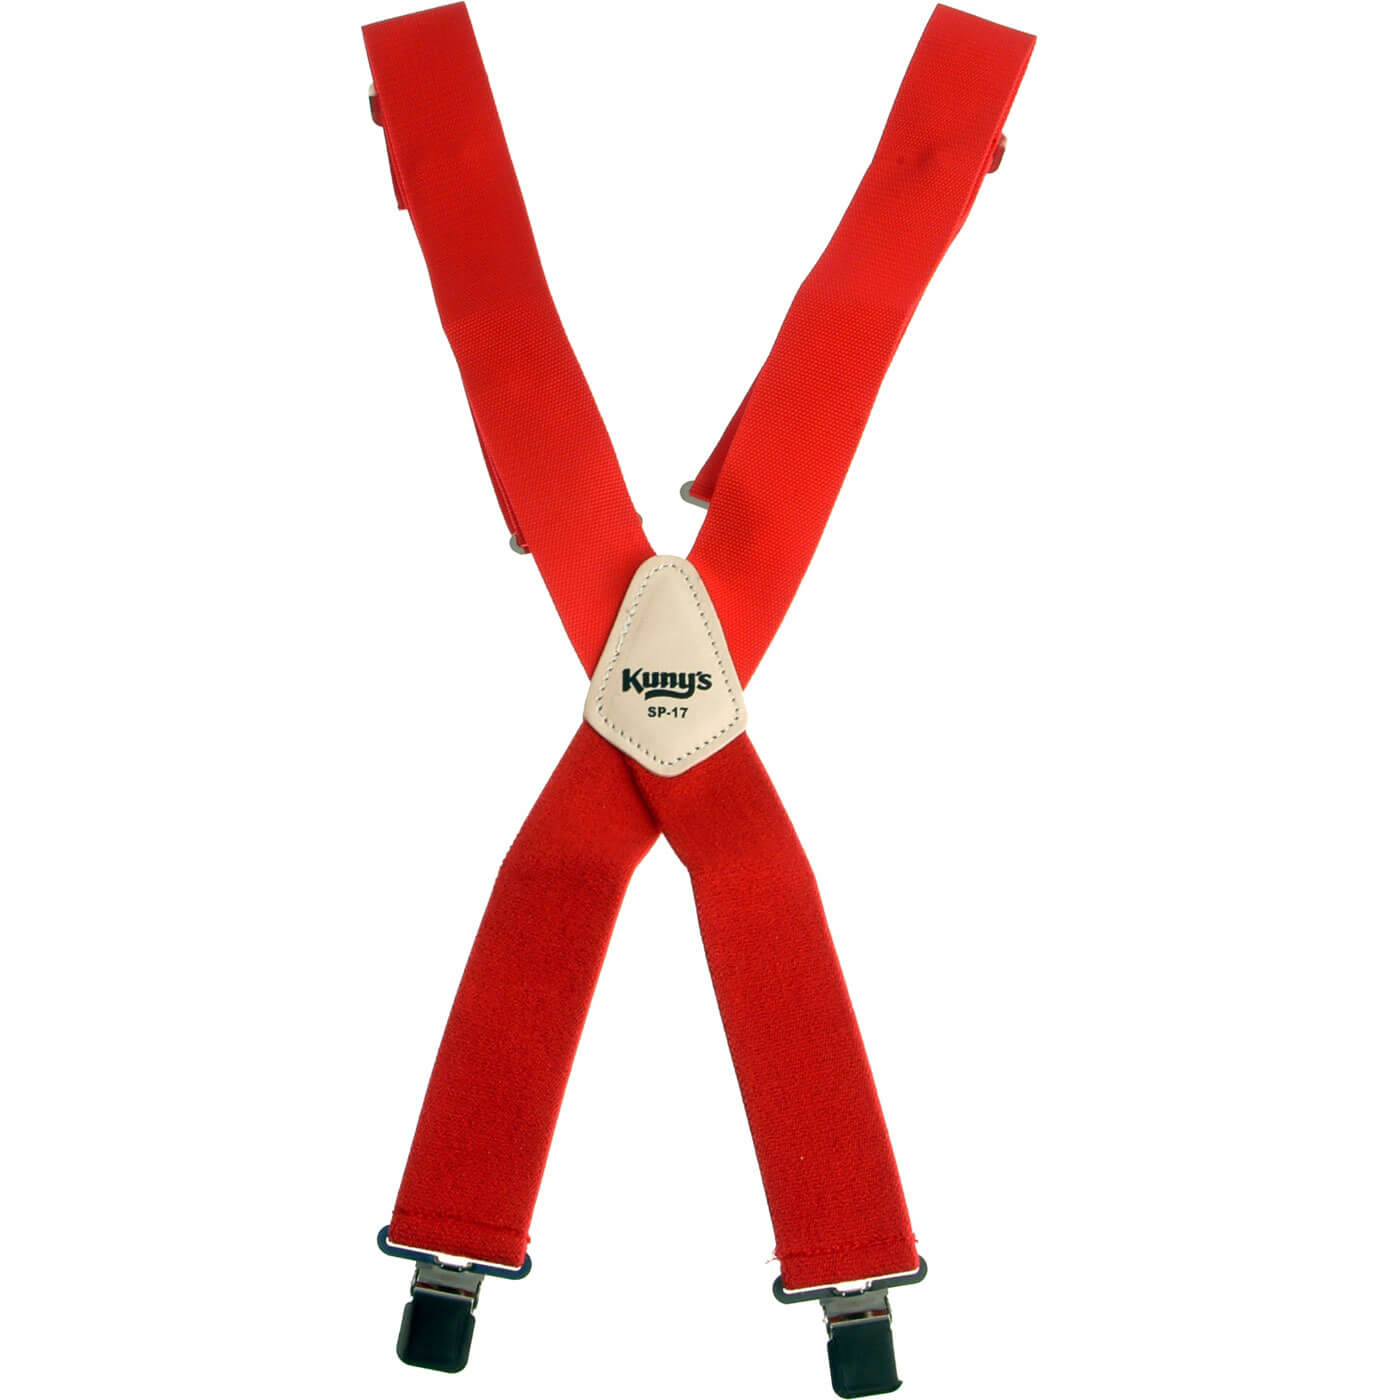 Image of Kunys Work Trousers Braces Red